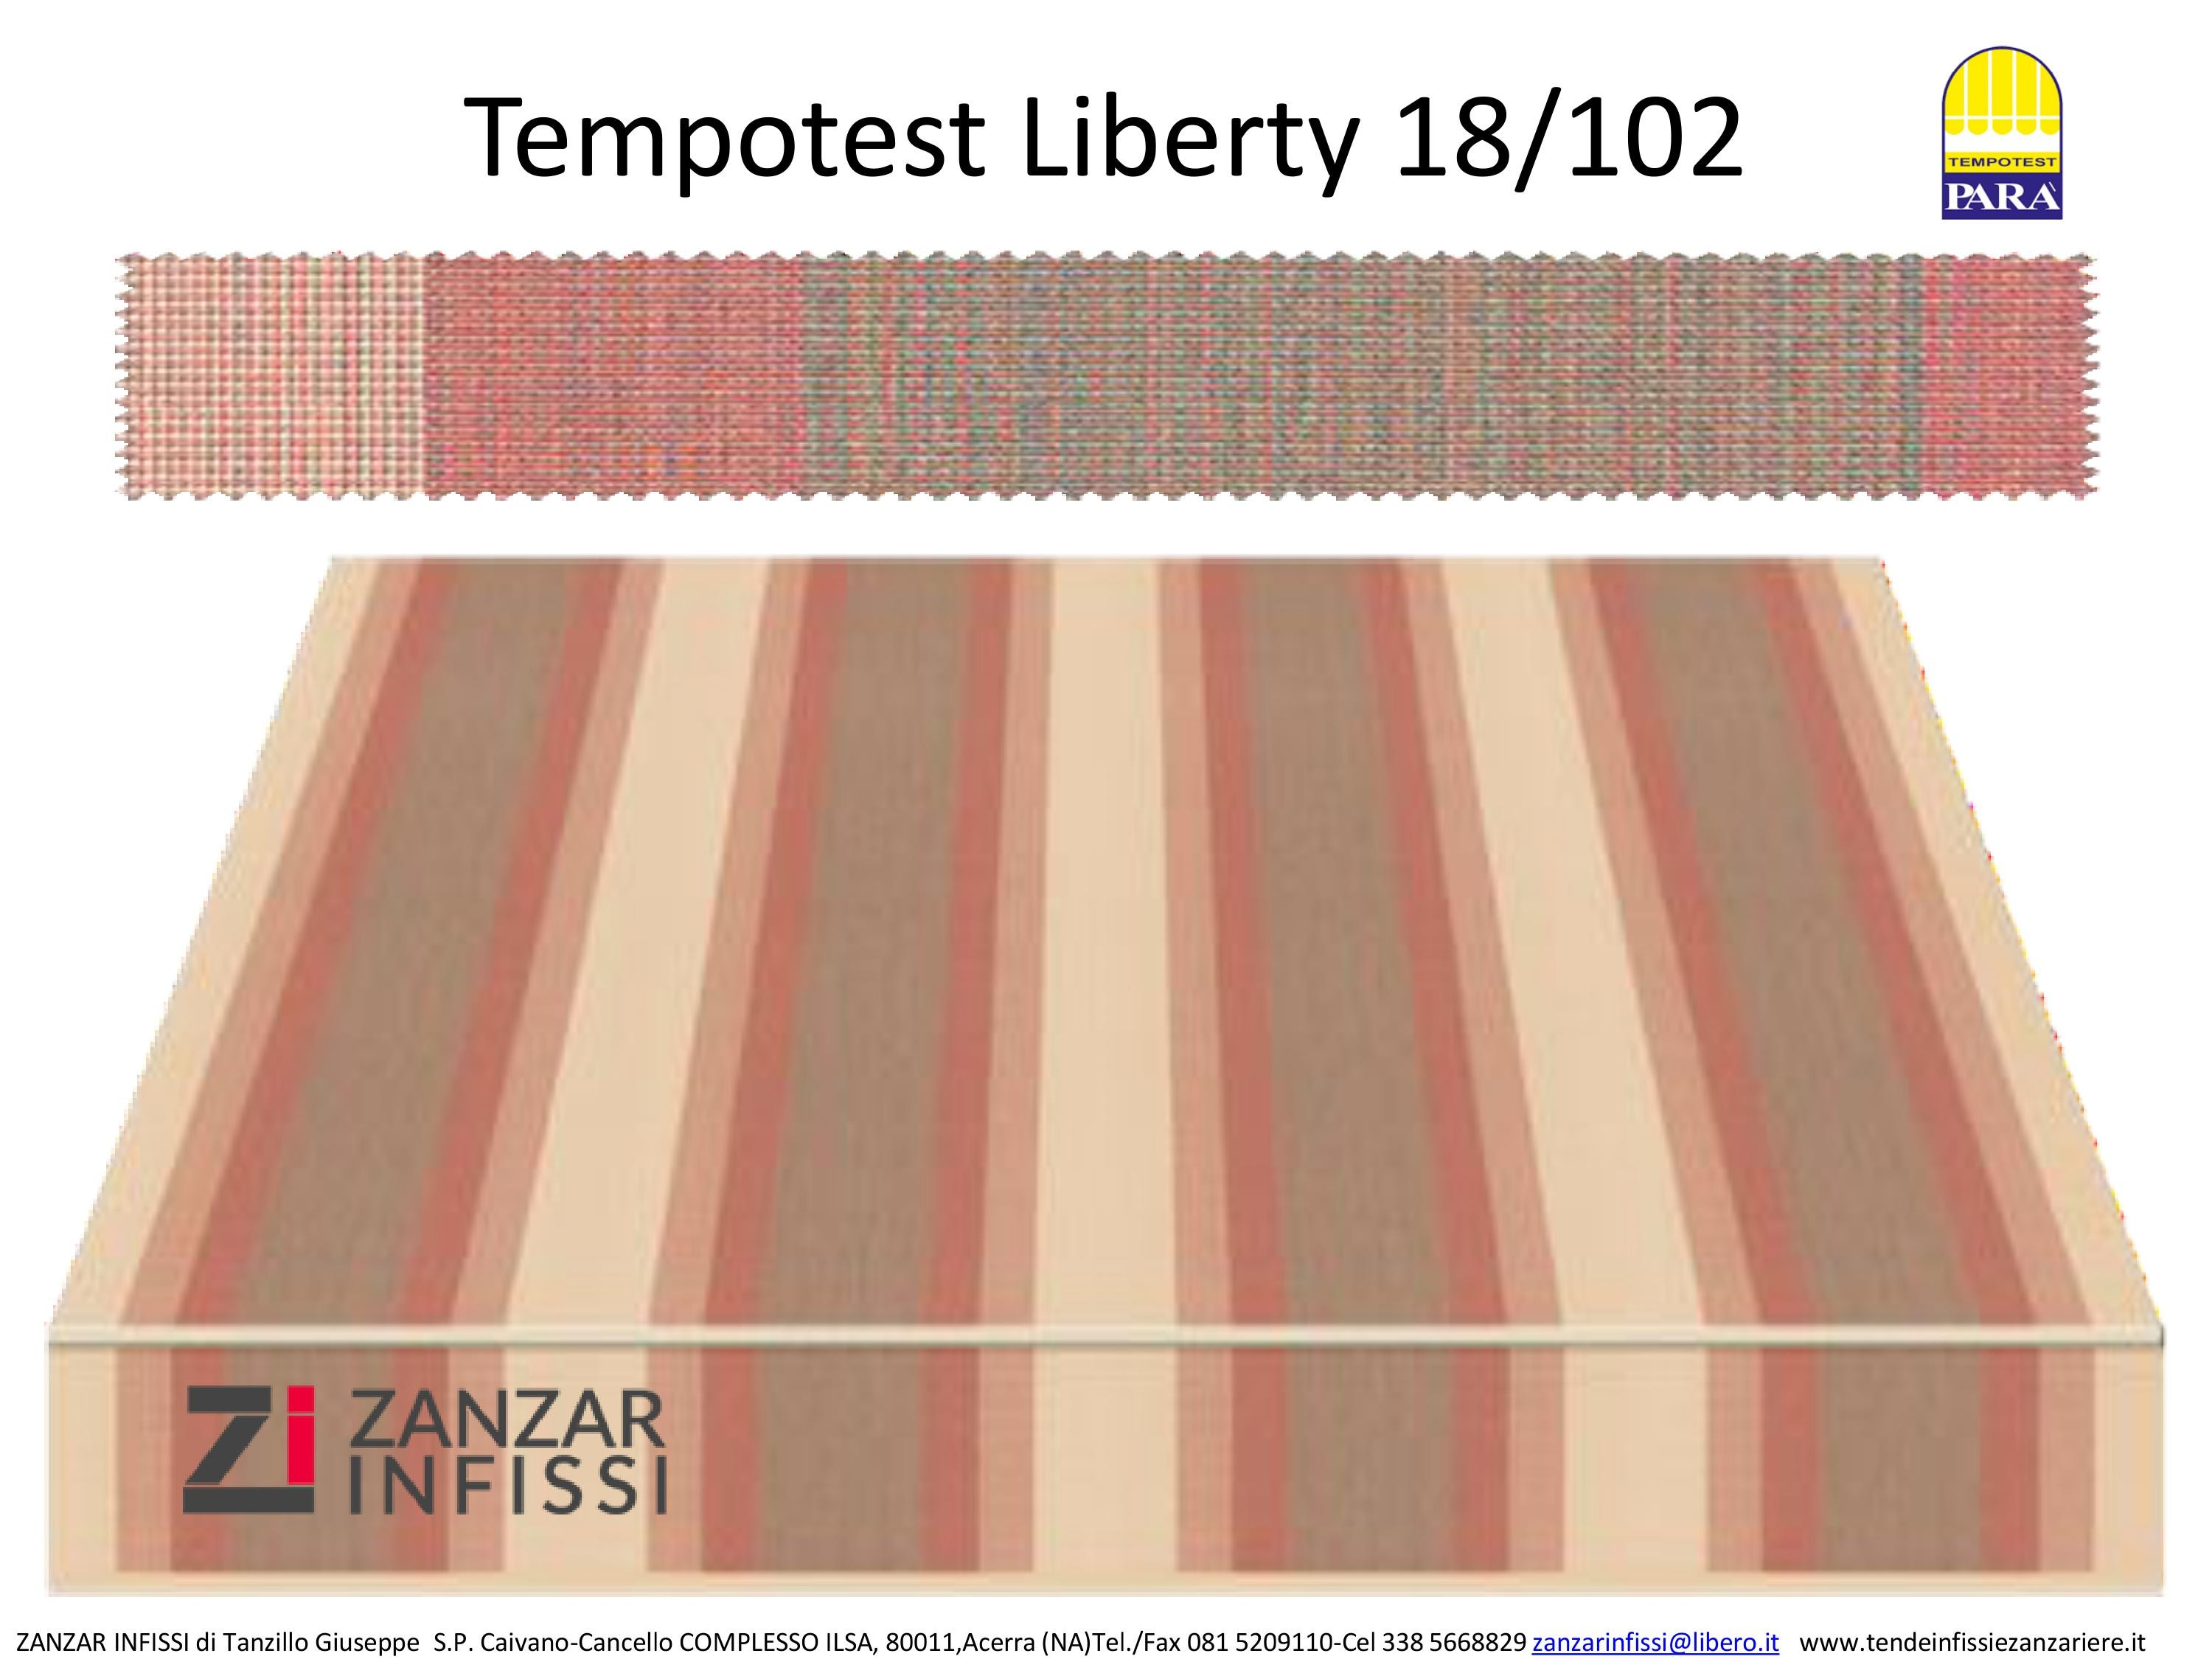 Tempotest Liberty 18/102